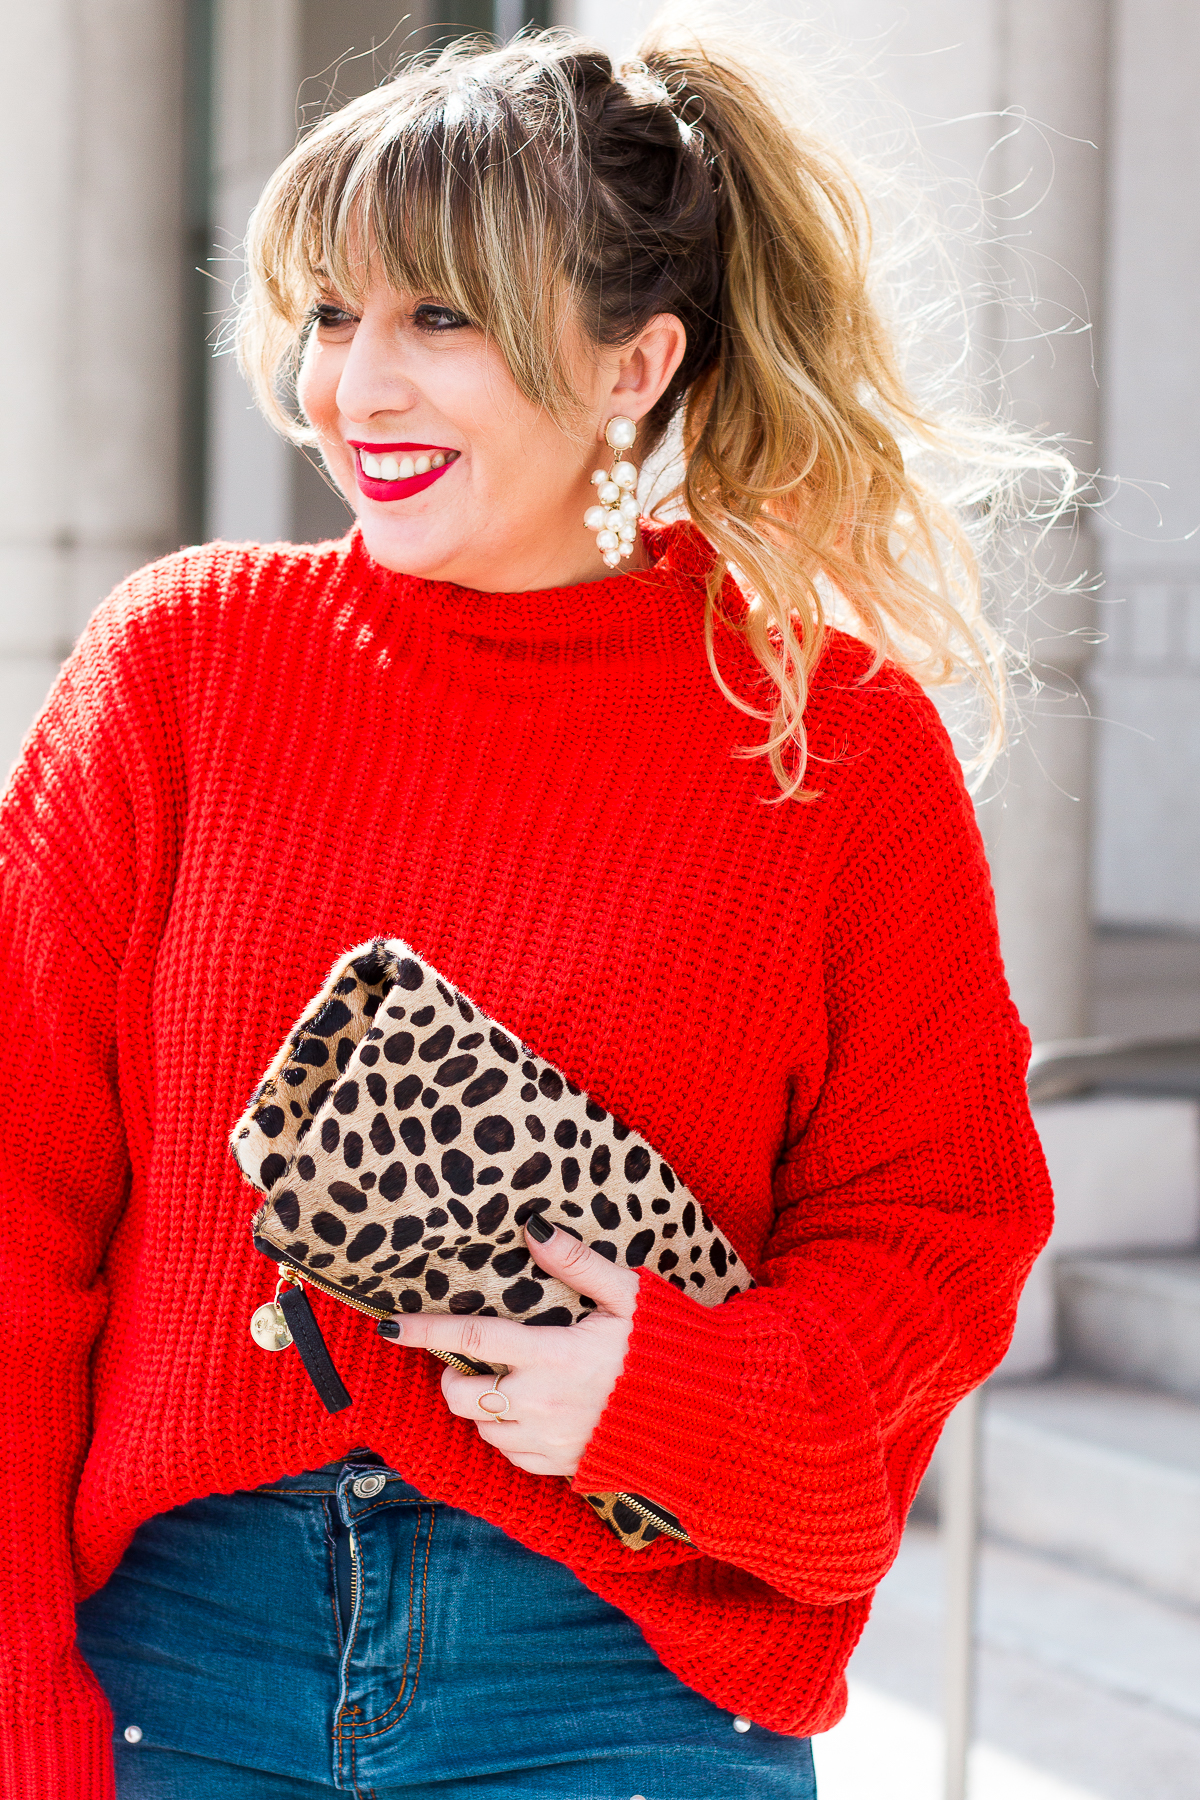 Red sweater for Valentine's Day